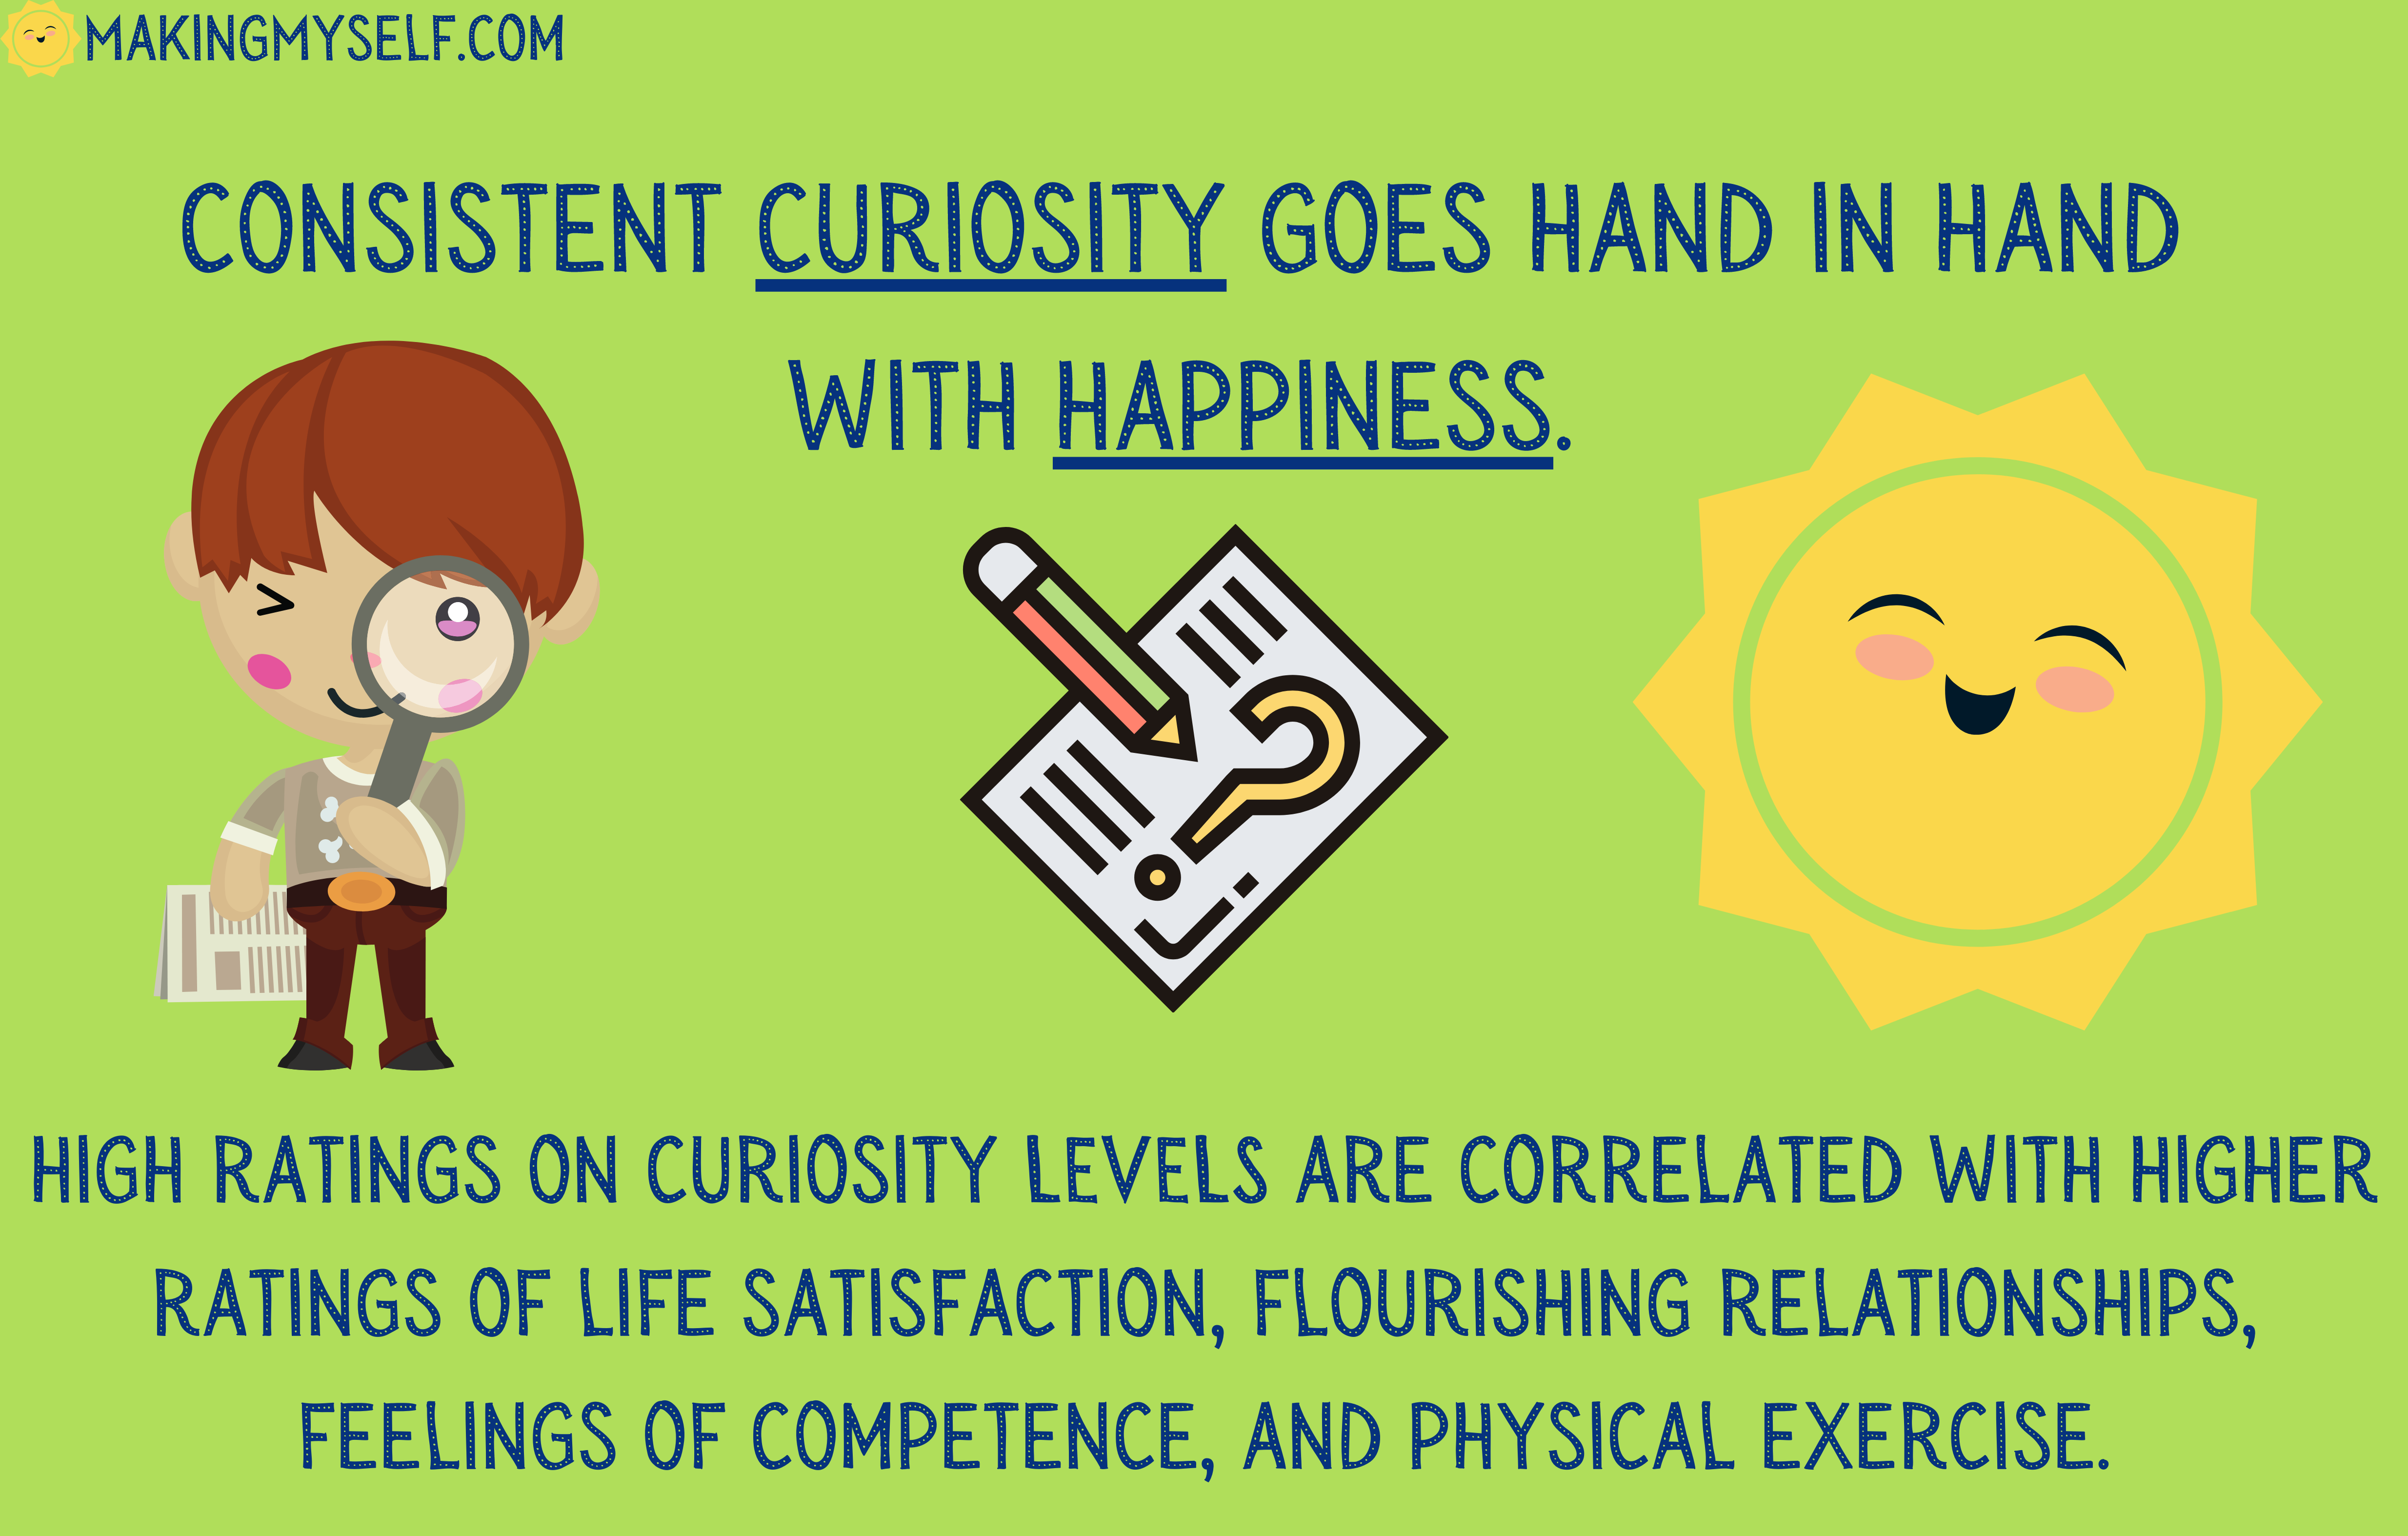 Consistent curiosity & happiness.